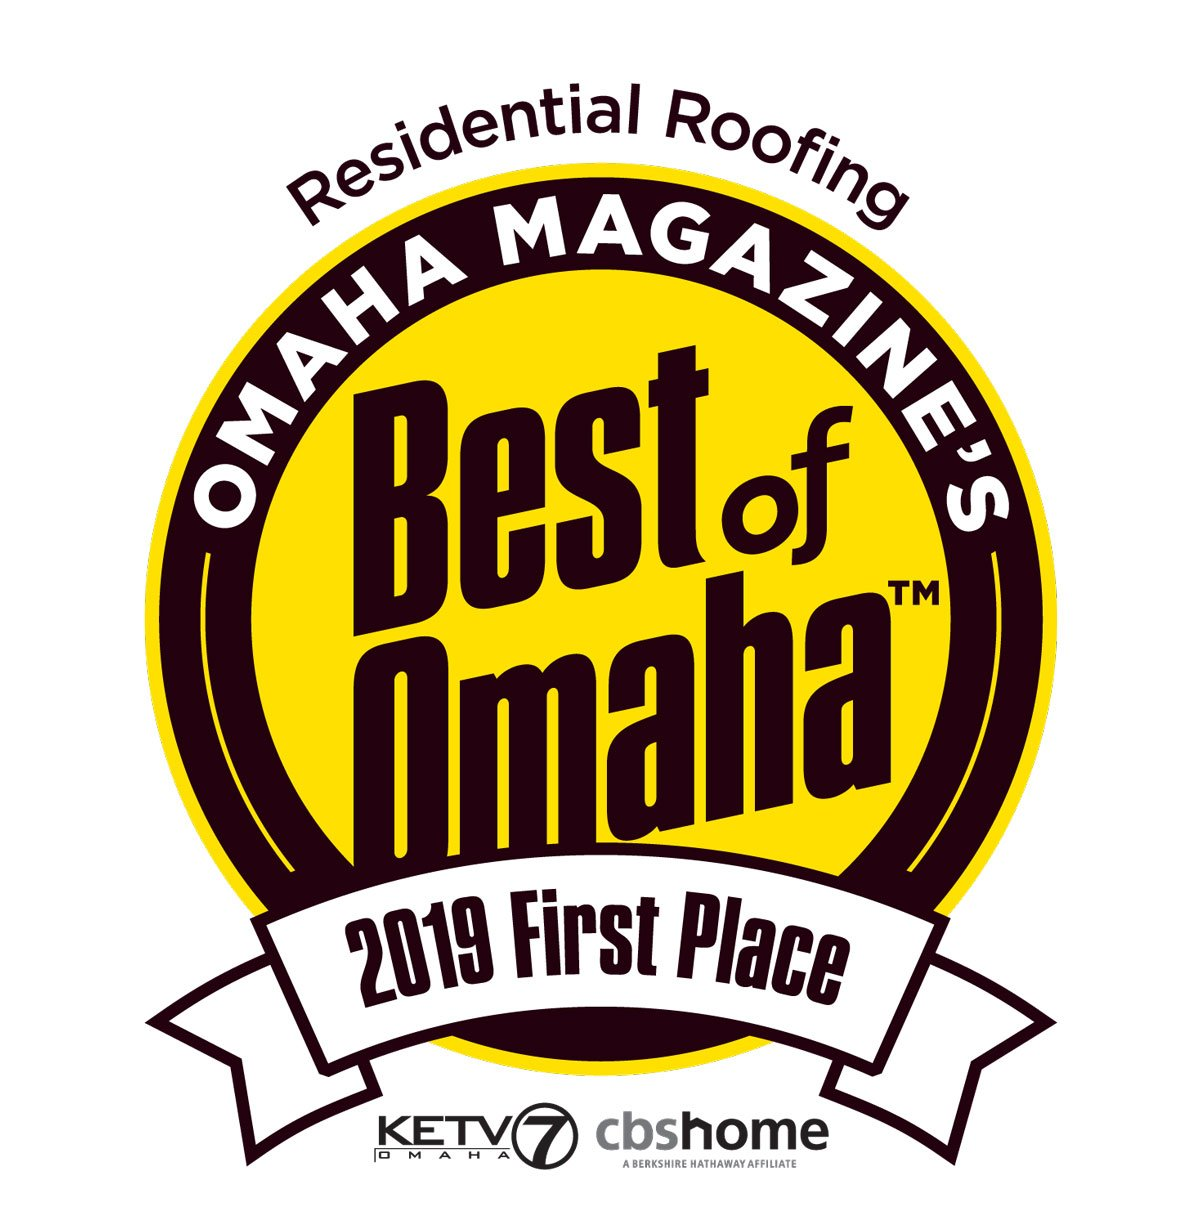 Our best Roofing in Omaha Award by Omaha Magazine!